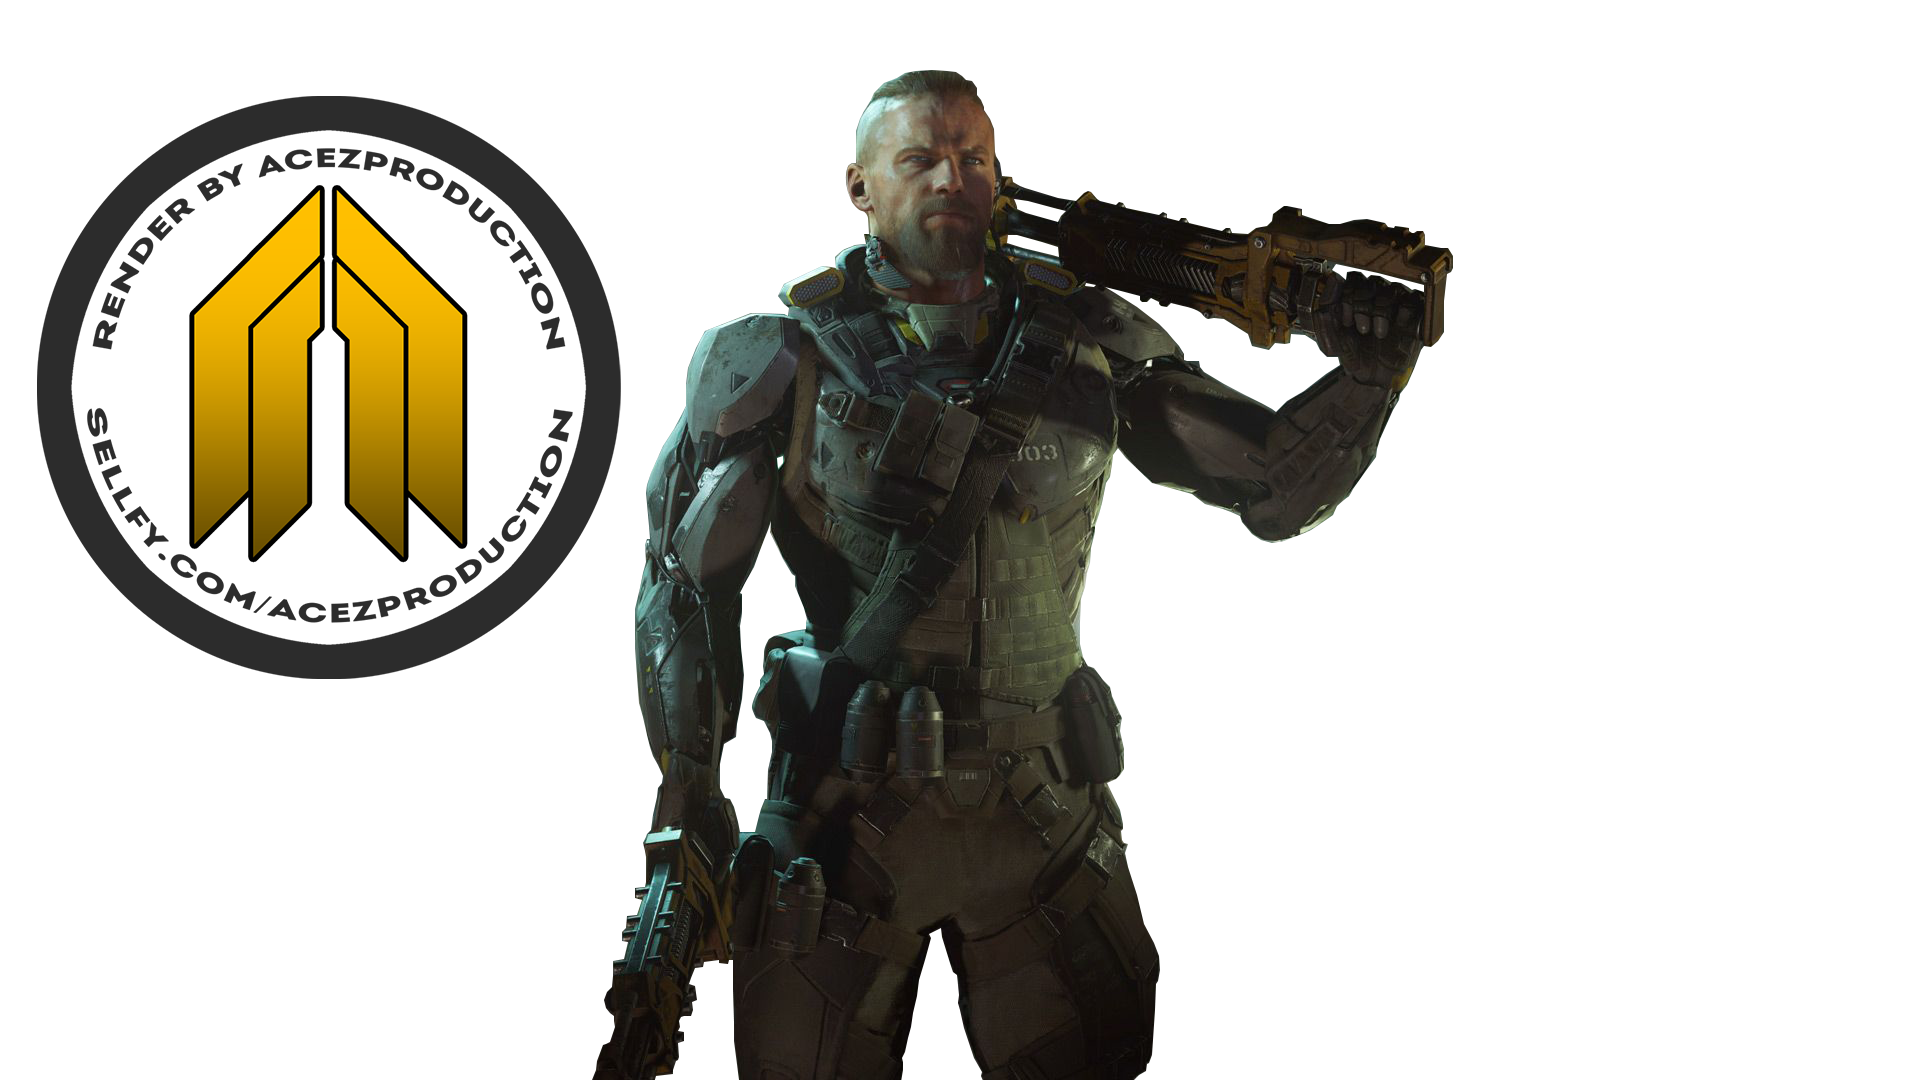 Black Ops 3 Character Png.